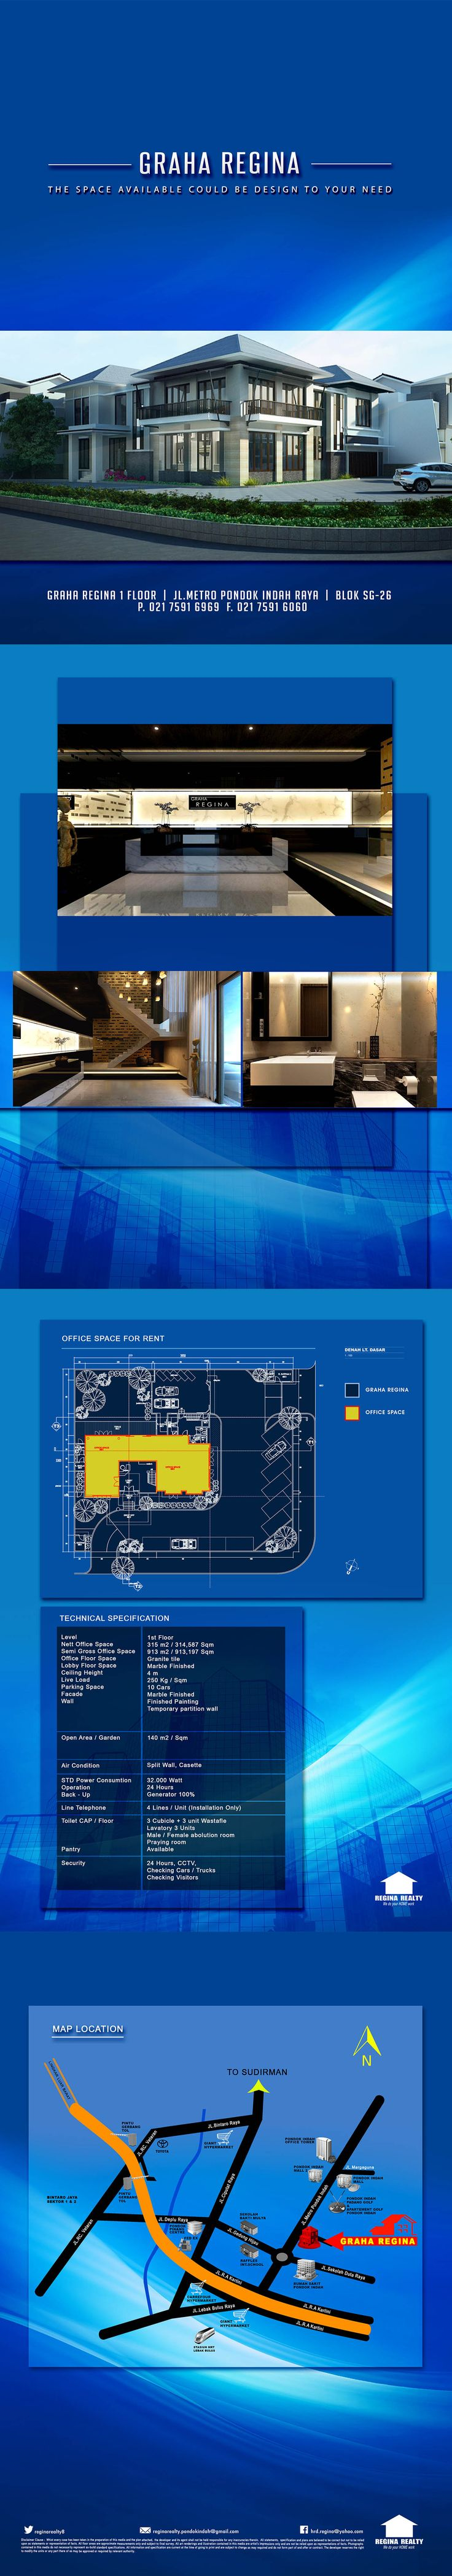 GRAHA REGINA The Space Available Could Be Design To Your Need www.reginarealty.co.id